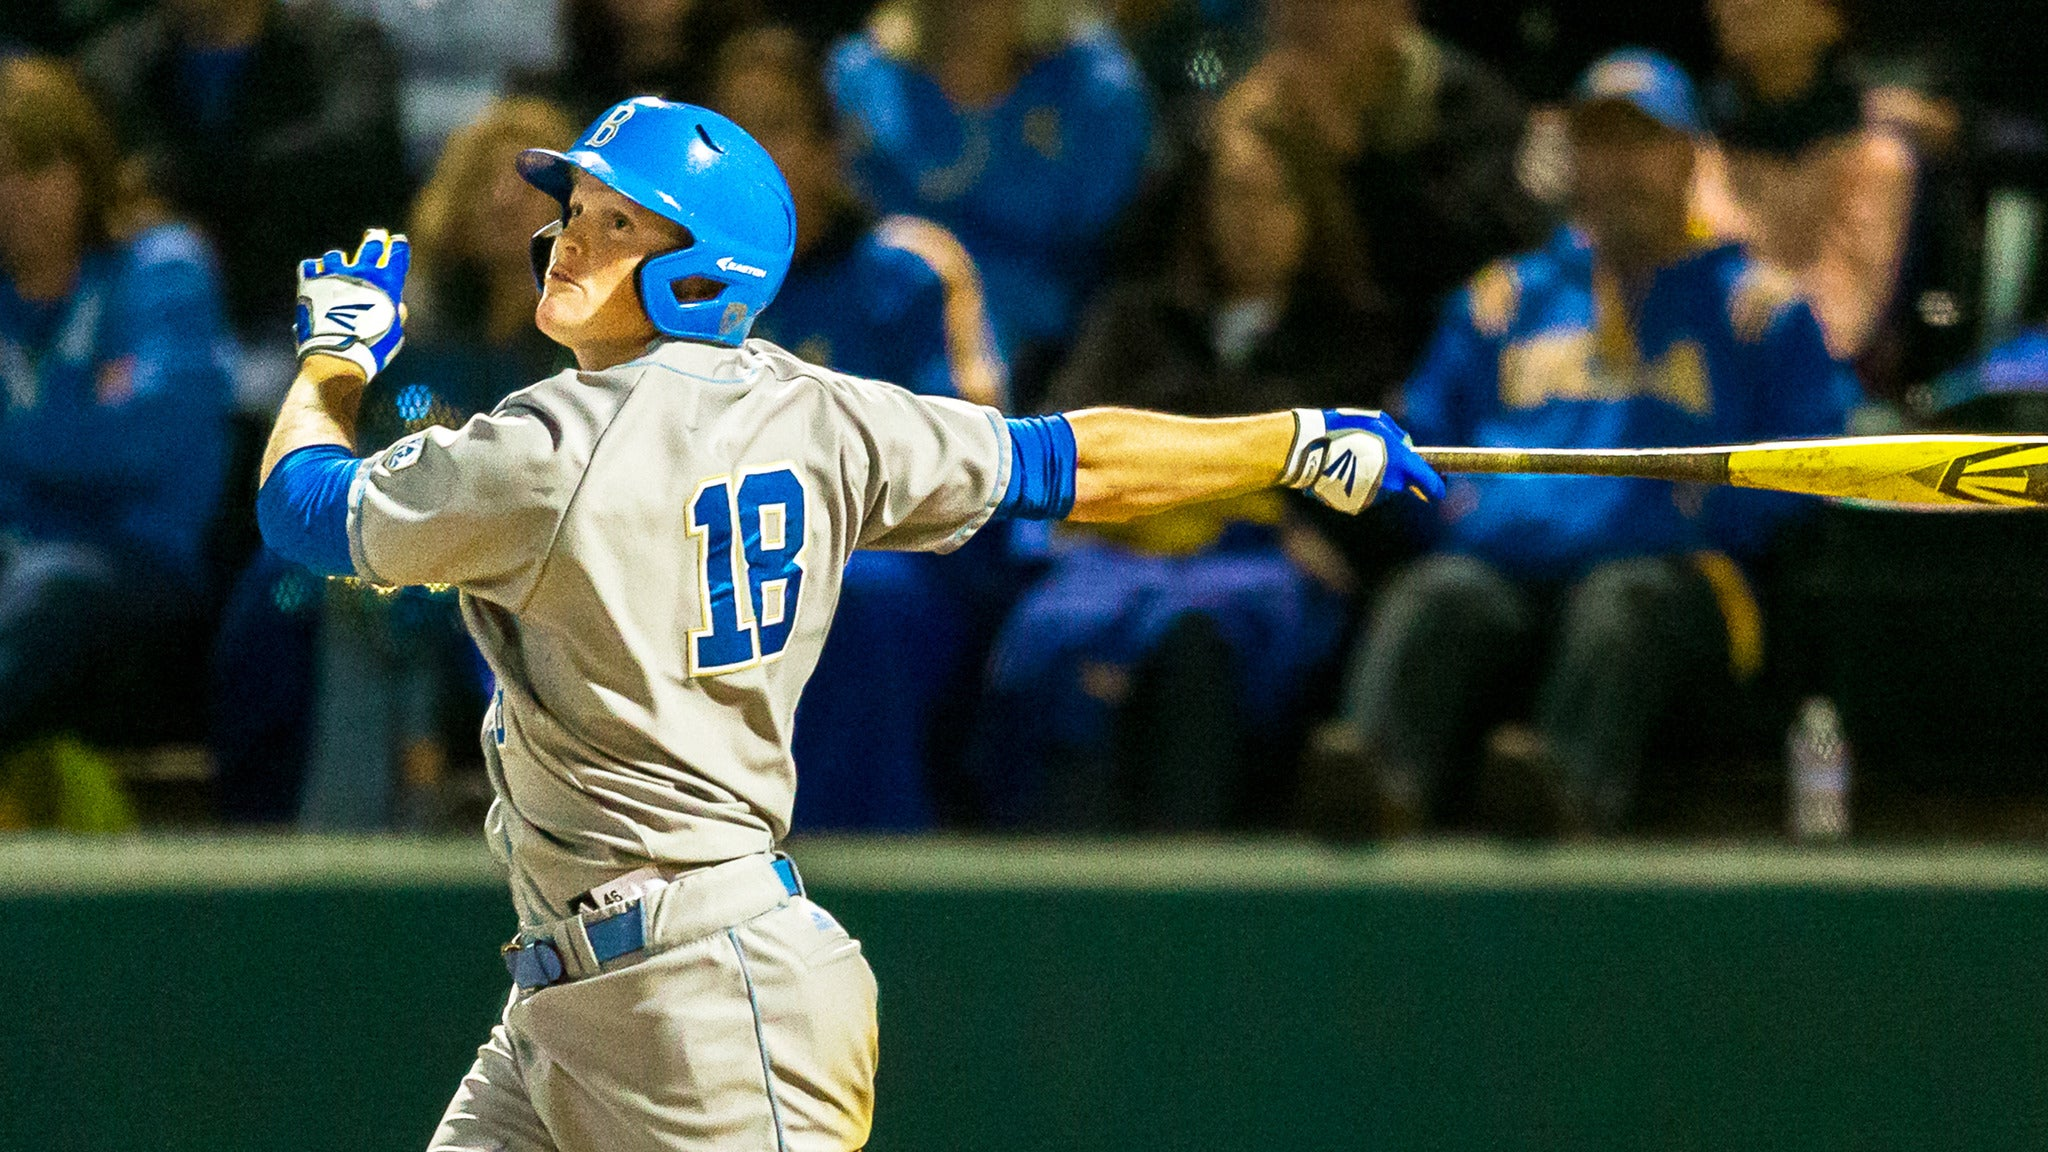 UCLA Bruins Baseball vs. Cal Poly Mustangs Baseball